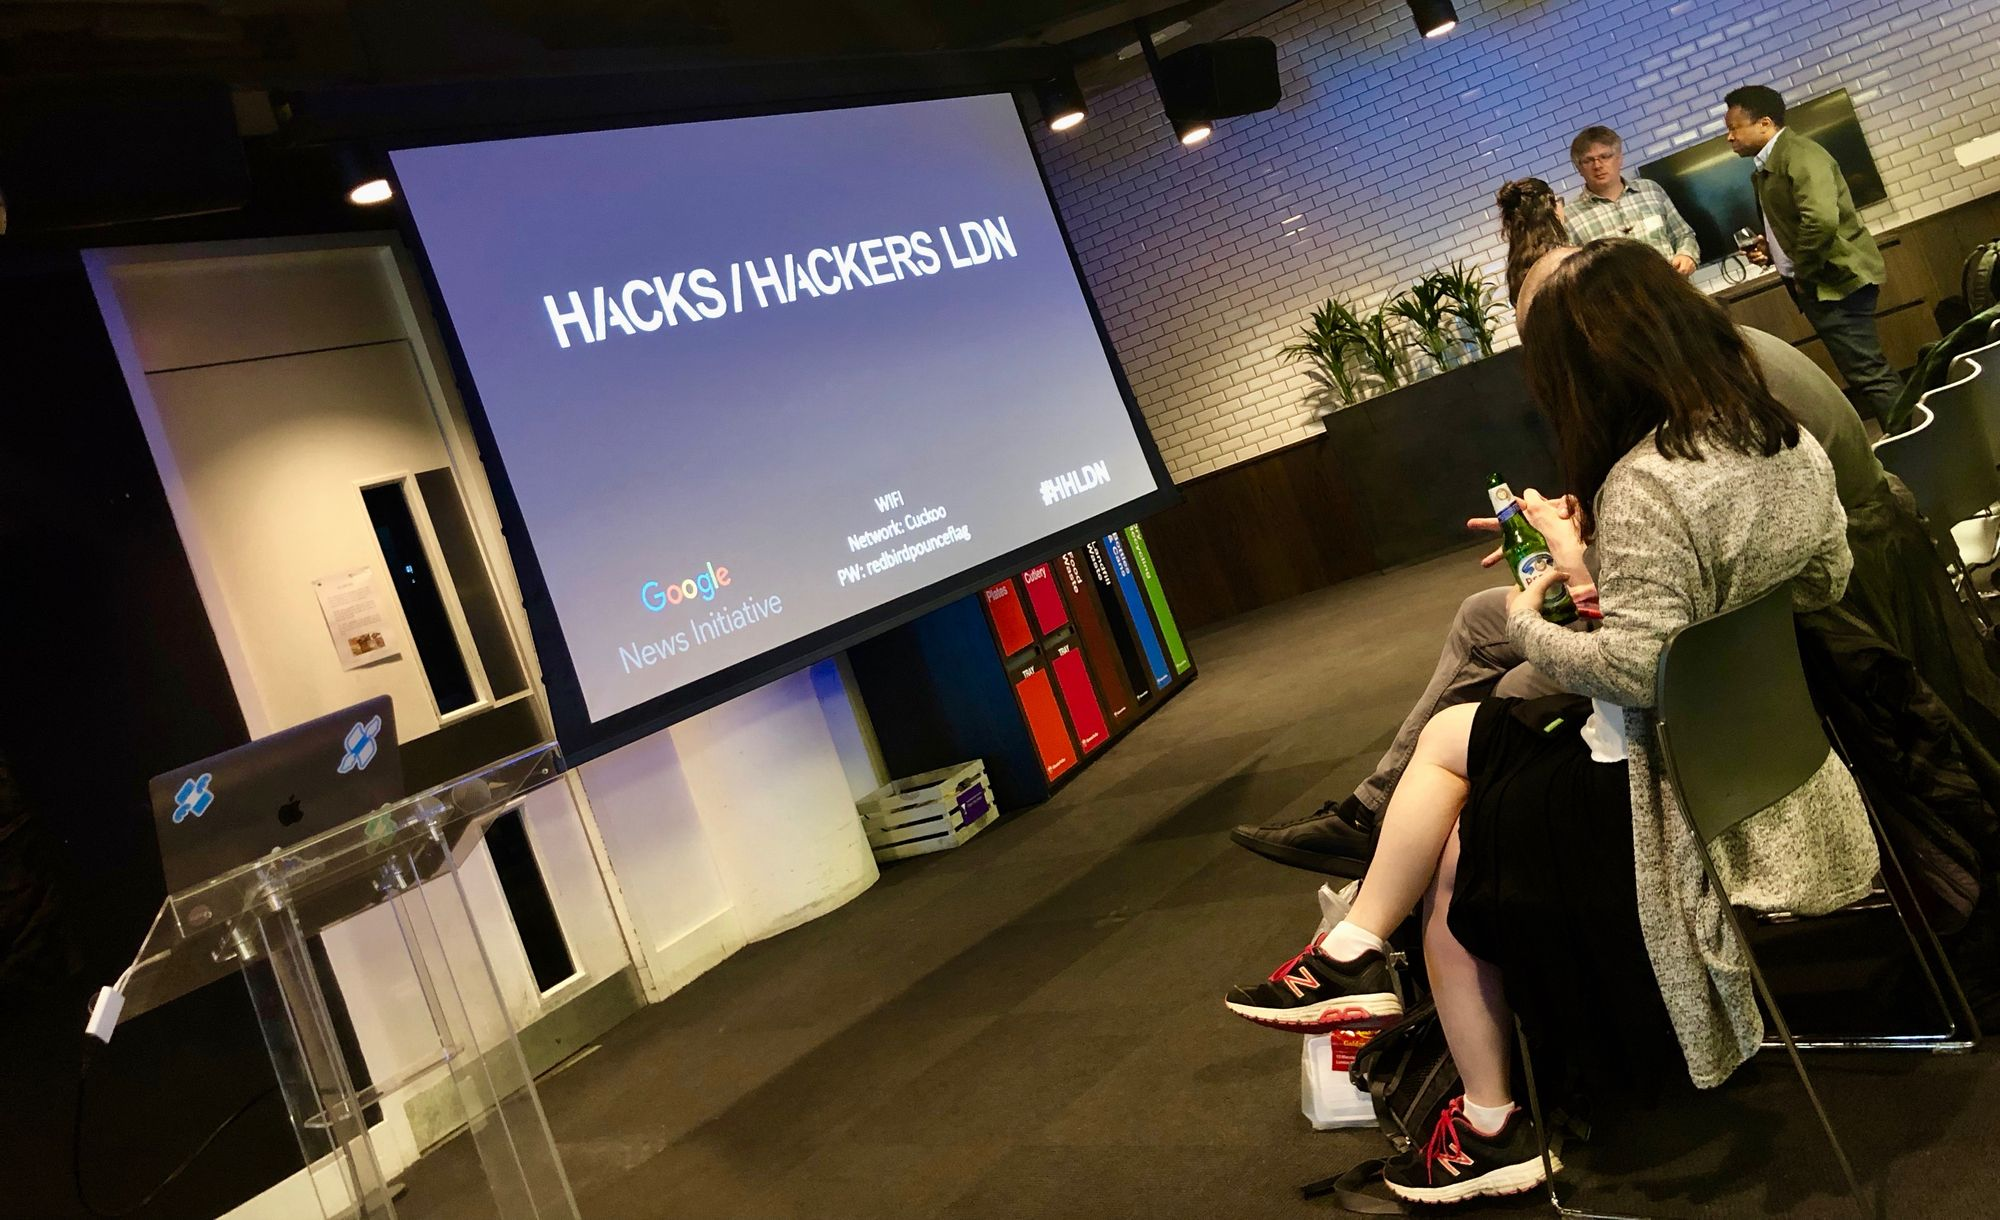 Hacks/Hackers London: News for millennial investors, engaged